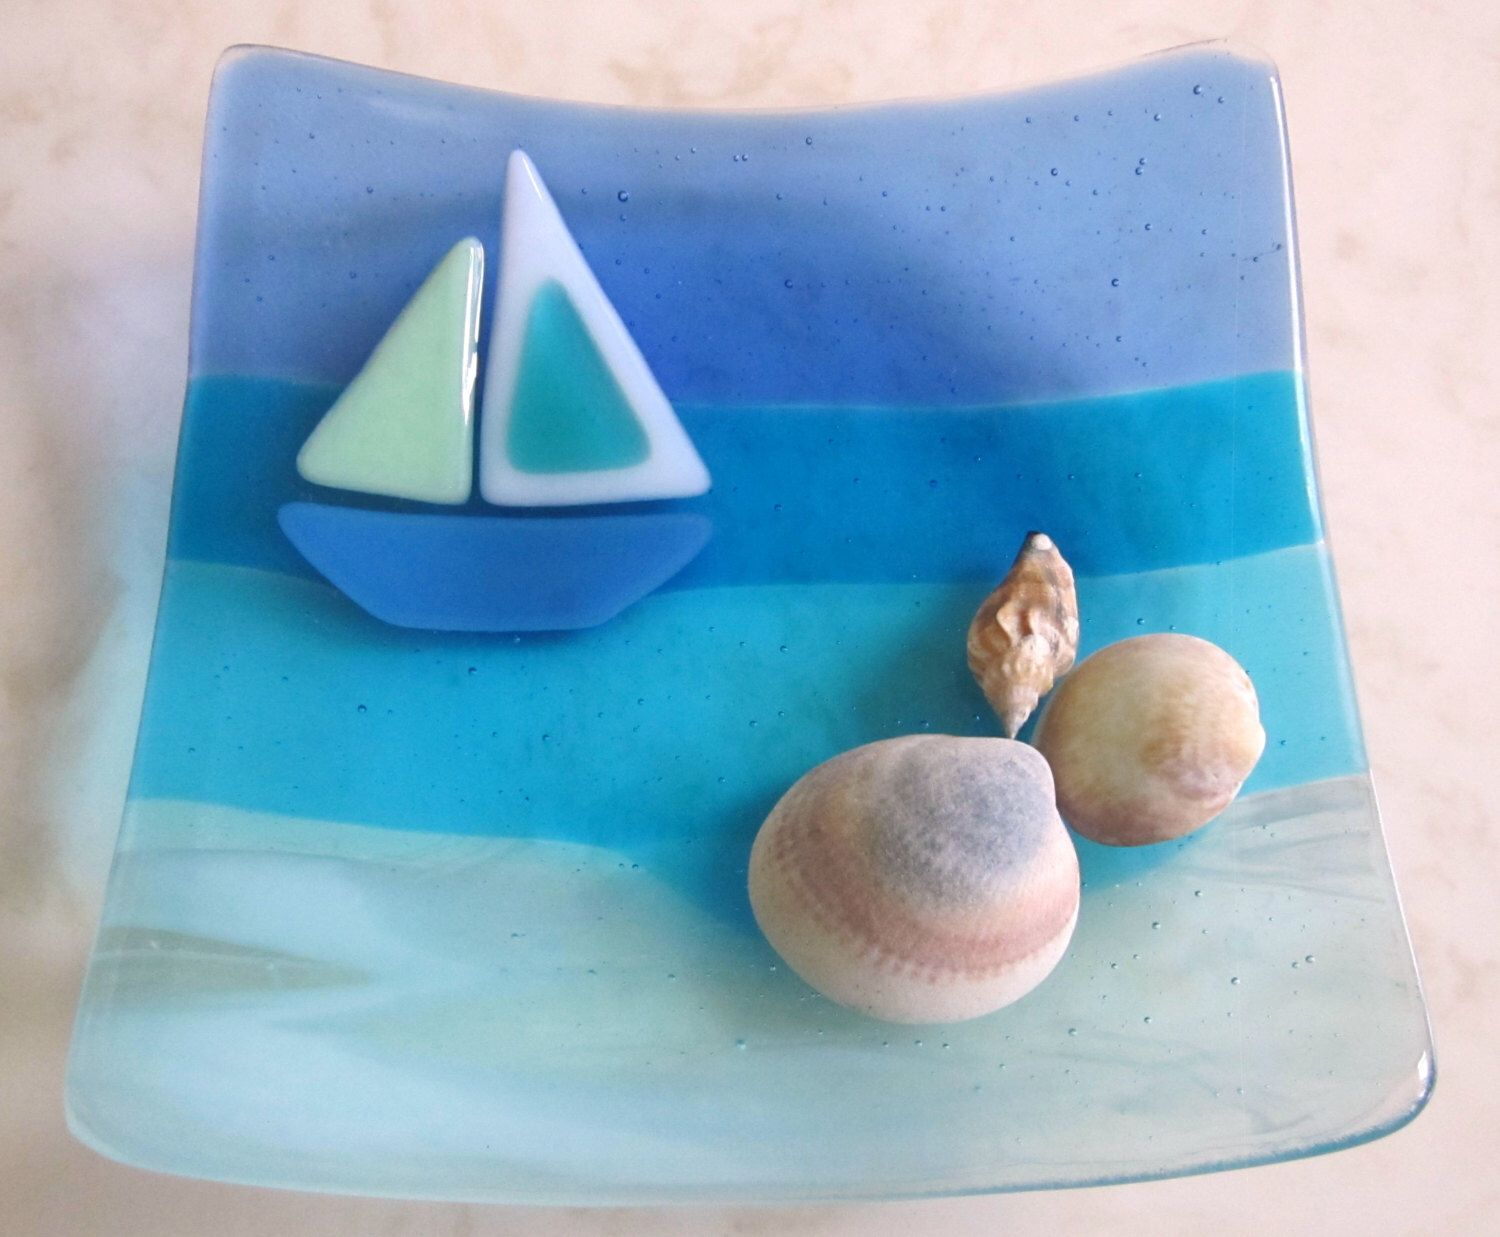 Row of beach huts curved fused glass table clock - Fused Glass Plate Glass Ocean Beach Decor Glass Boat At Sea Fused Glass Sailboat Glass By The Sea Aquamarine Glass Turquoise Water